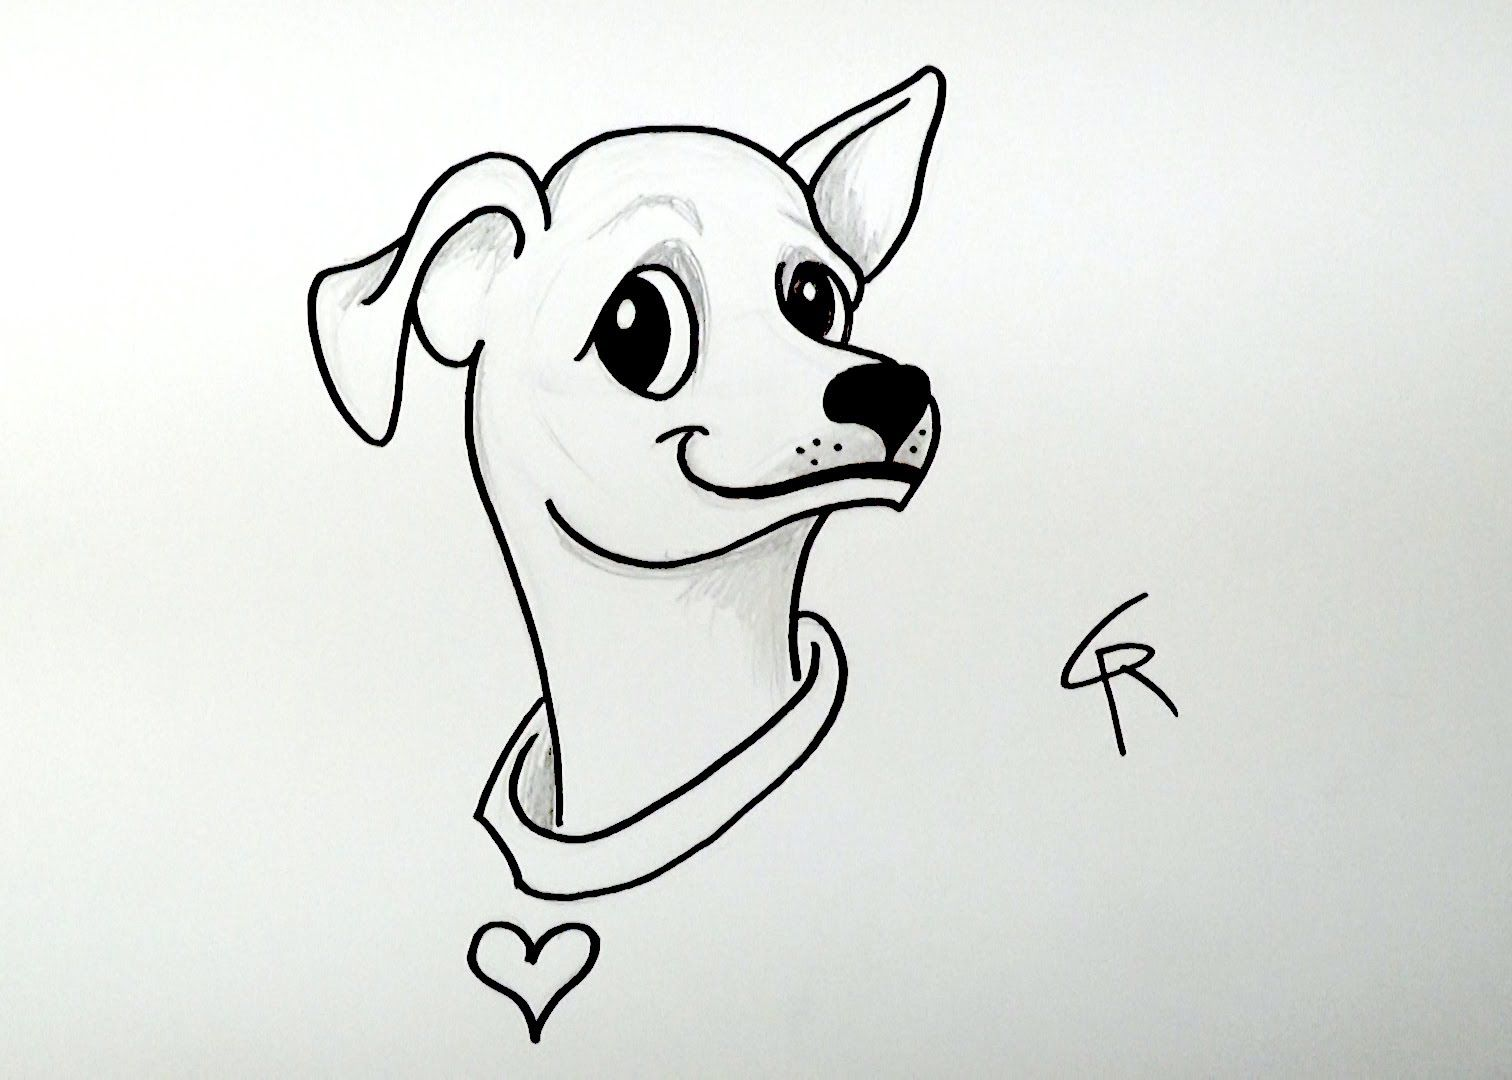 Learn How To Draw A Cute Cartoon Chihuahua  Icanhazdraw!